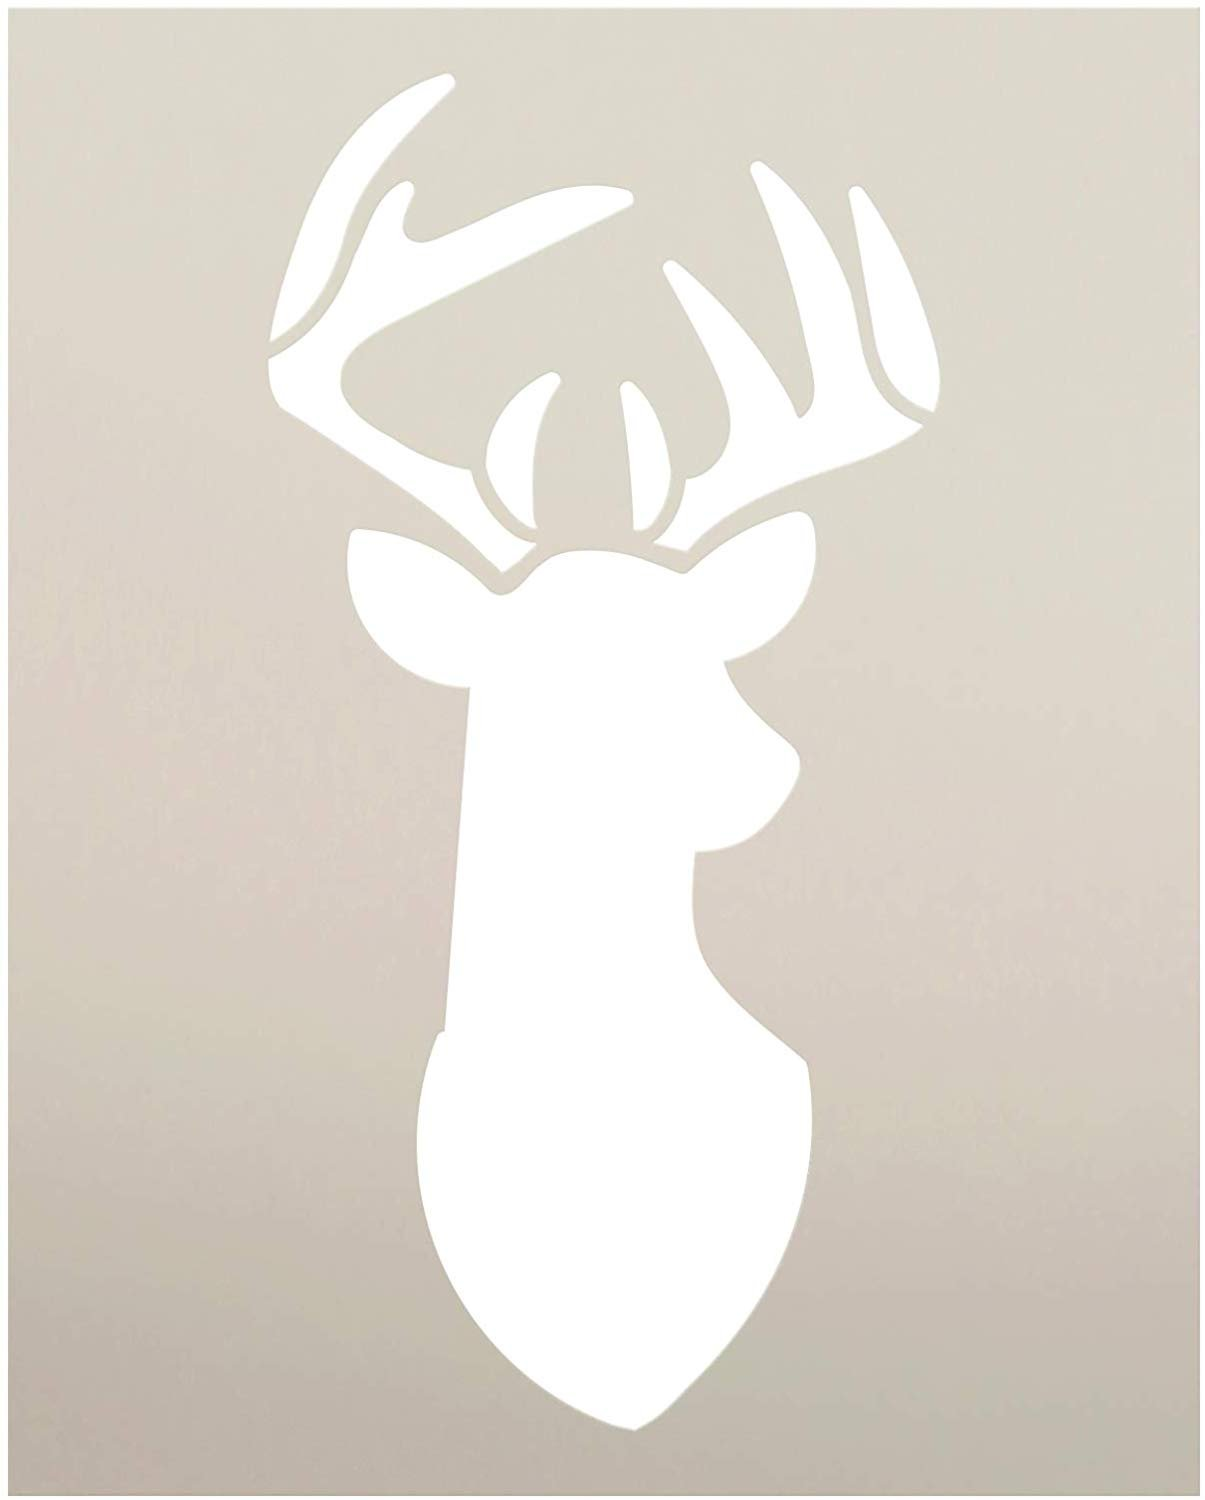 Deer Head Stencil with Antlers by StudioR12 | DIY Country Animal Farmhouse Decor | Hunting Buck Wall Art for Man Cave | Paint Wood Signs | Reusable Mylar Template | Select Size